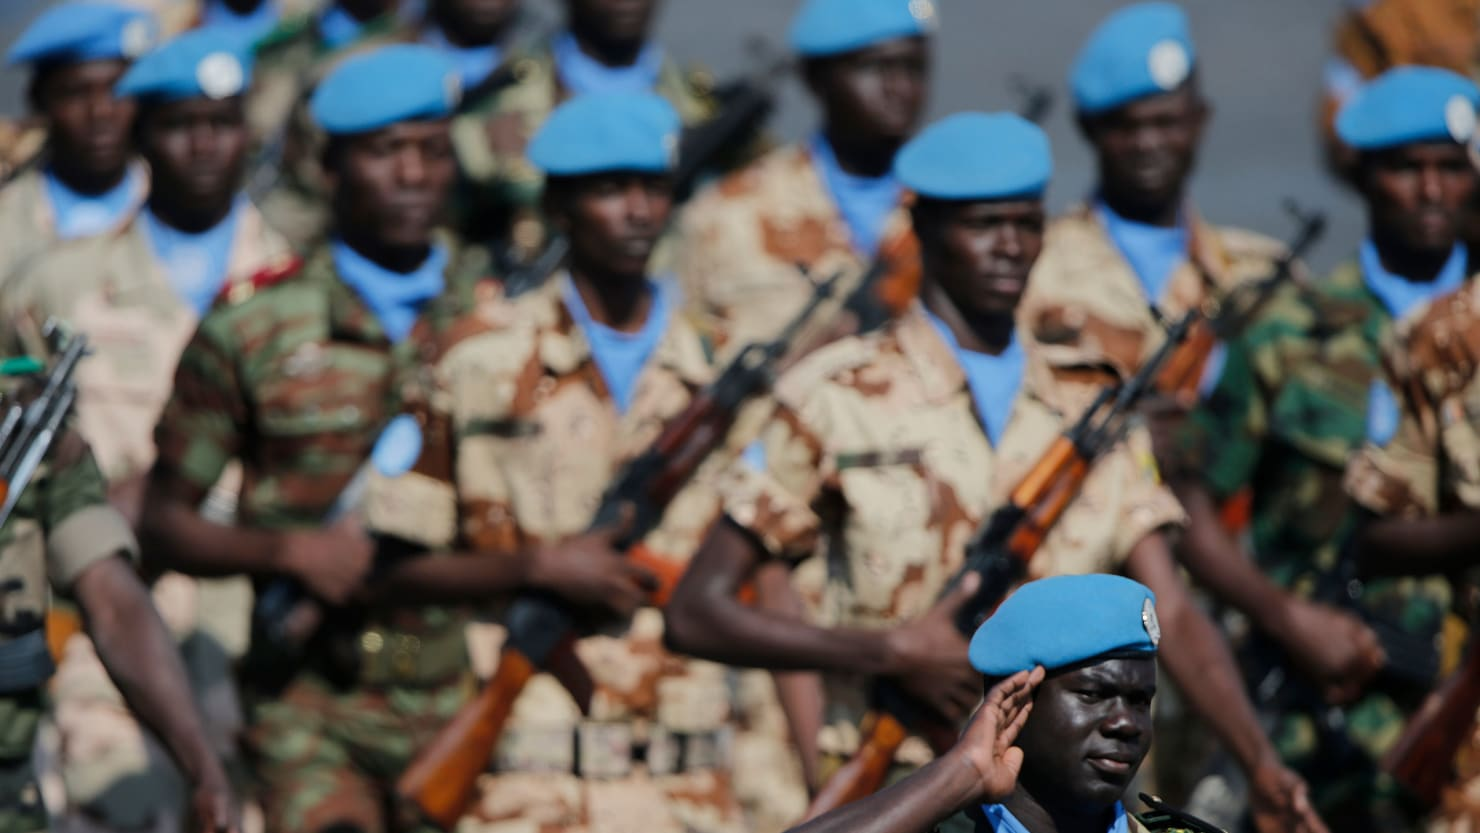 8 peacekeepers killed in Mali